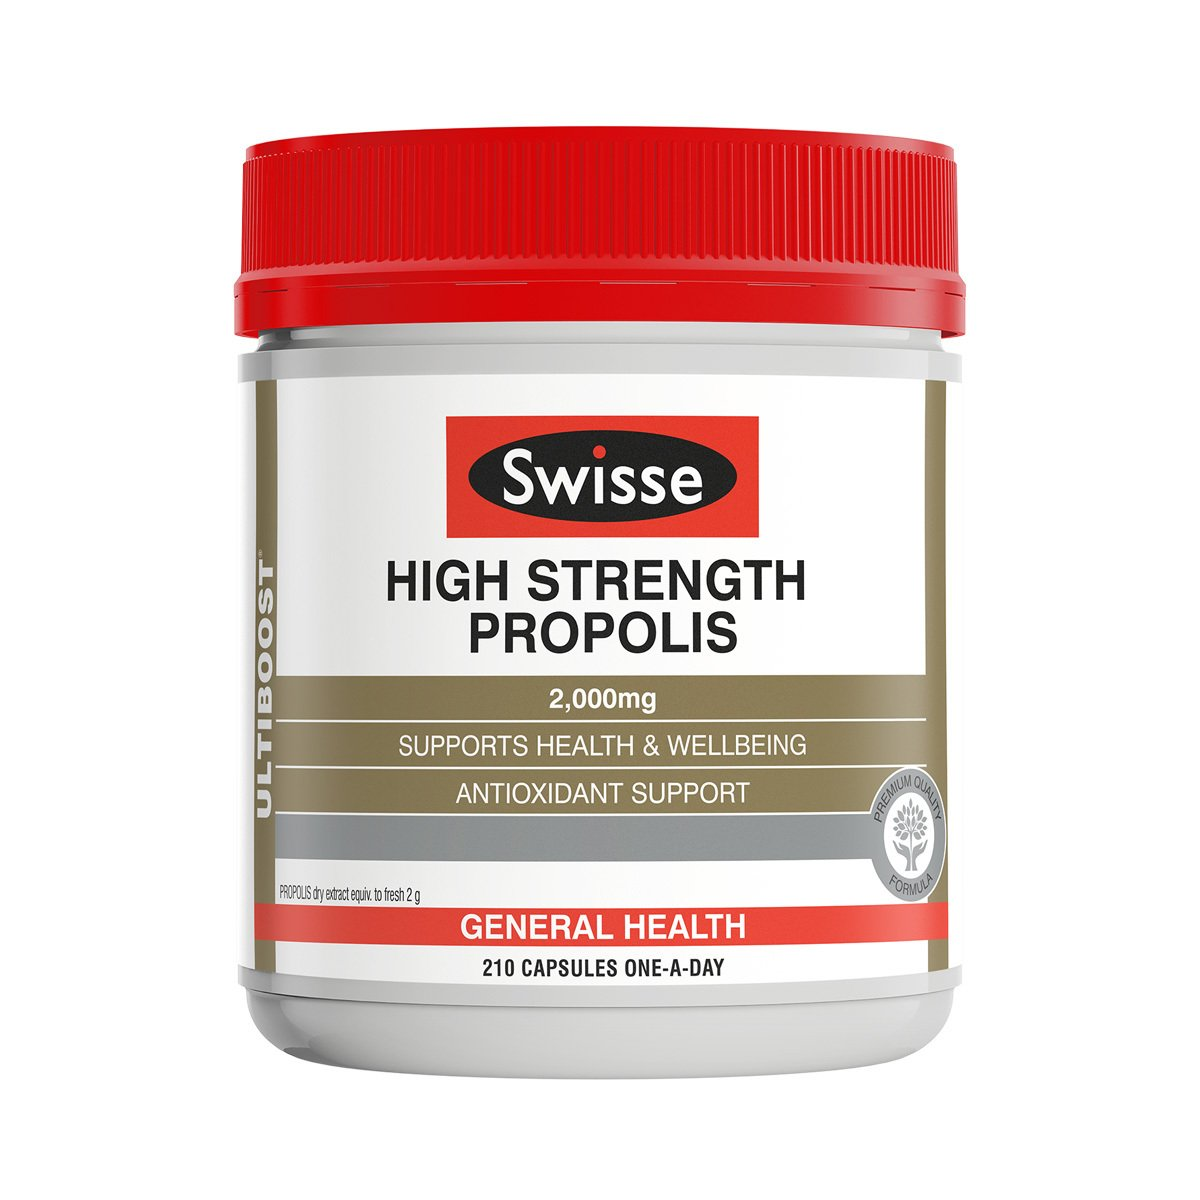 Pack shot of Swisse Product High Strength Propolis 210 caps